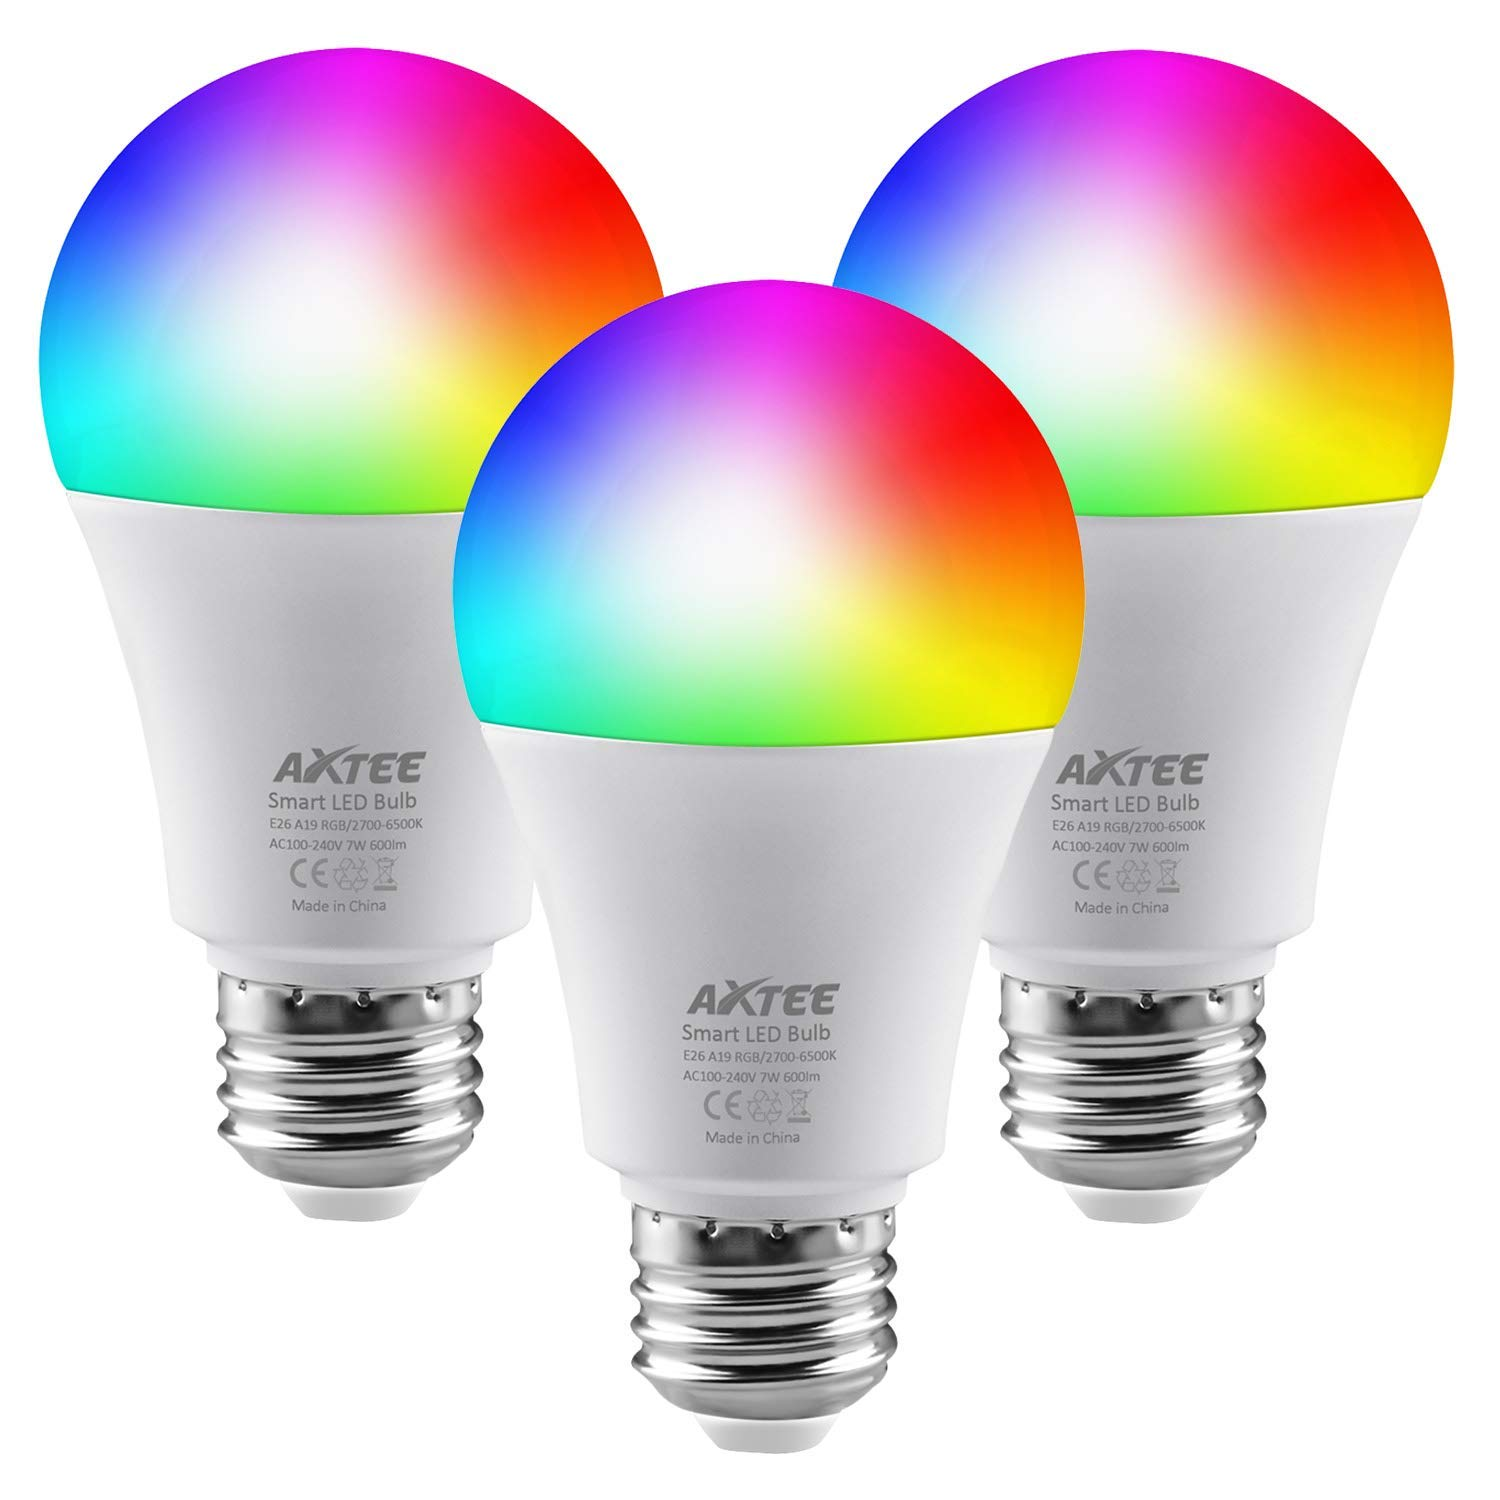 AXTEE Smart WiFi Light Bulb, Smart LED RGB Color Changing Bulb with Remote Control, No Hub Required, E26 Multicolor Dimmable Night Lamp, Compatible with Amazon Alexa and Google Home Assist(7W, 3 PACK)